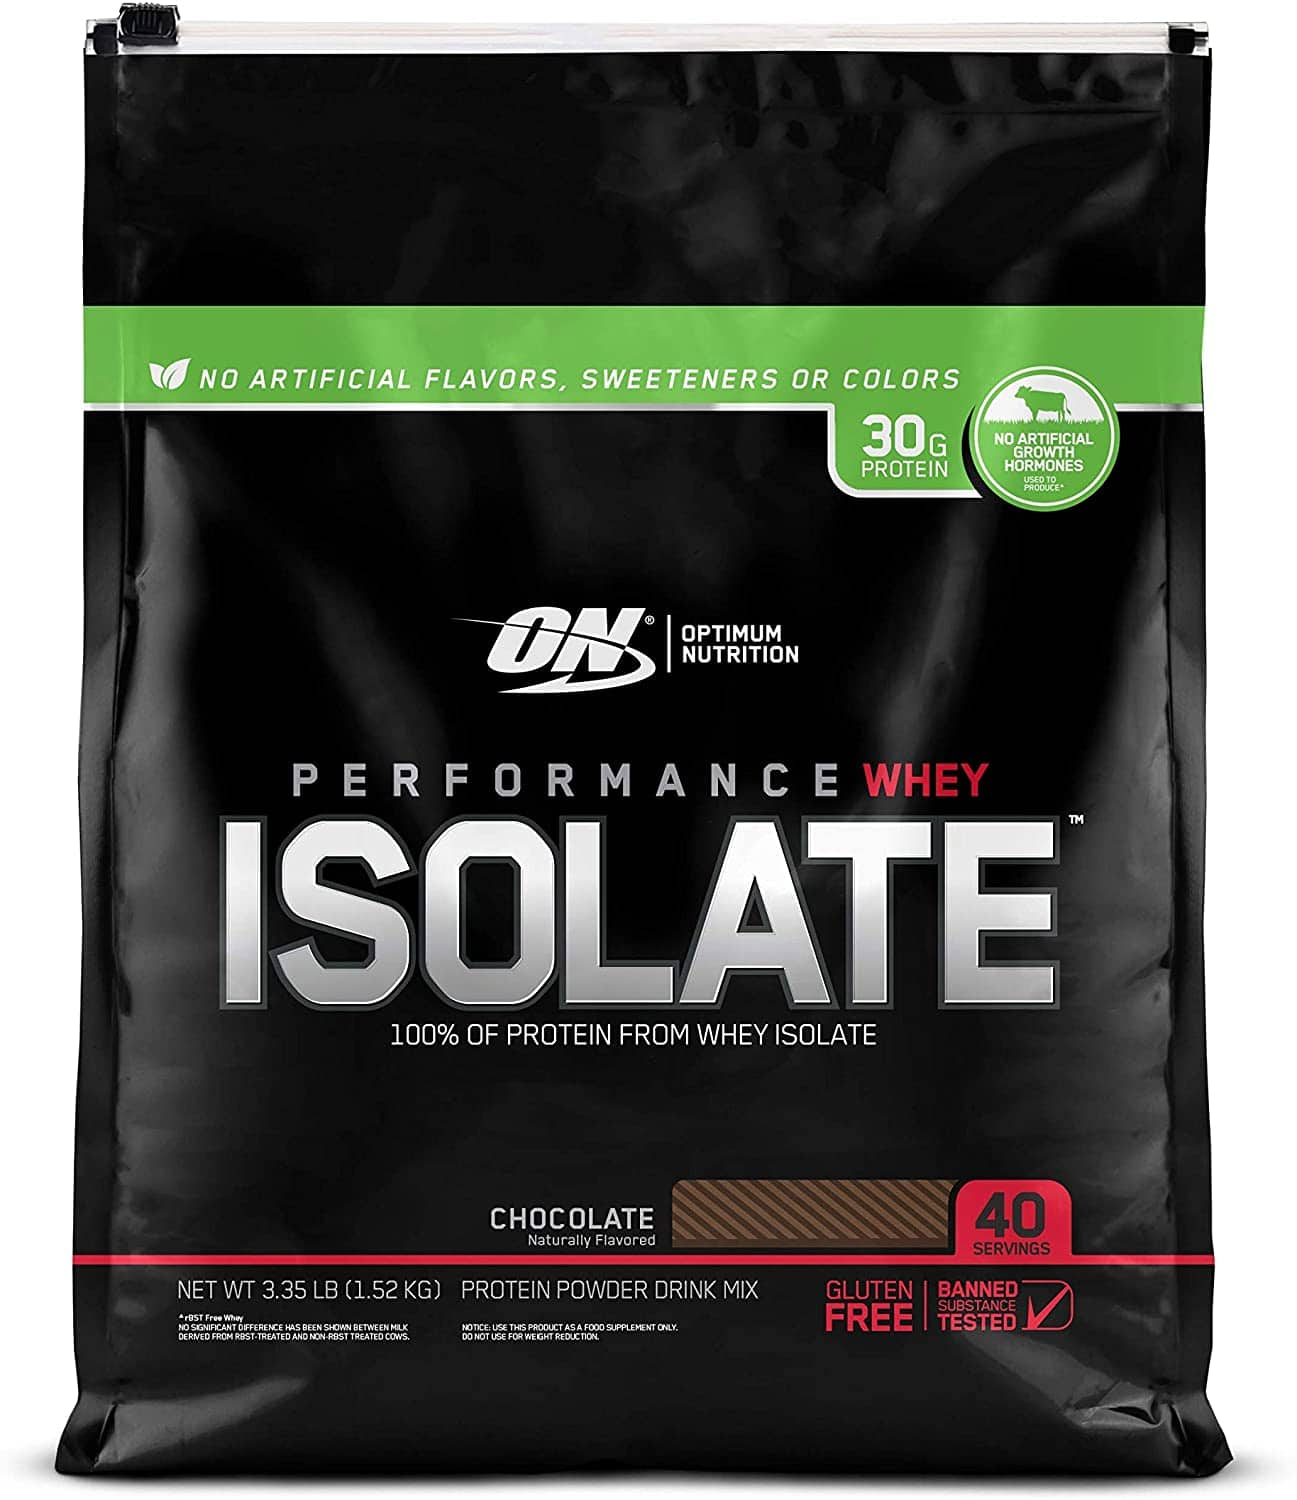 3.35-lbs Optimum Nutrition Performance Whey Isolate Protein Powder (Chocolate) $24.99